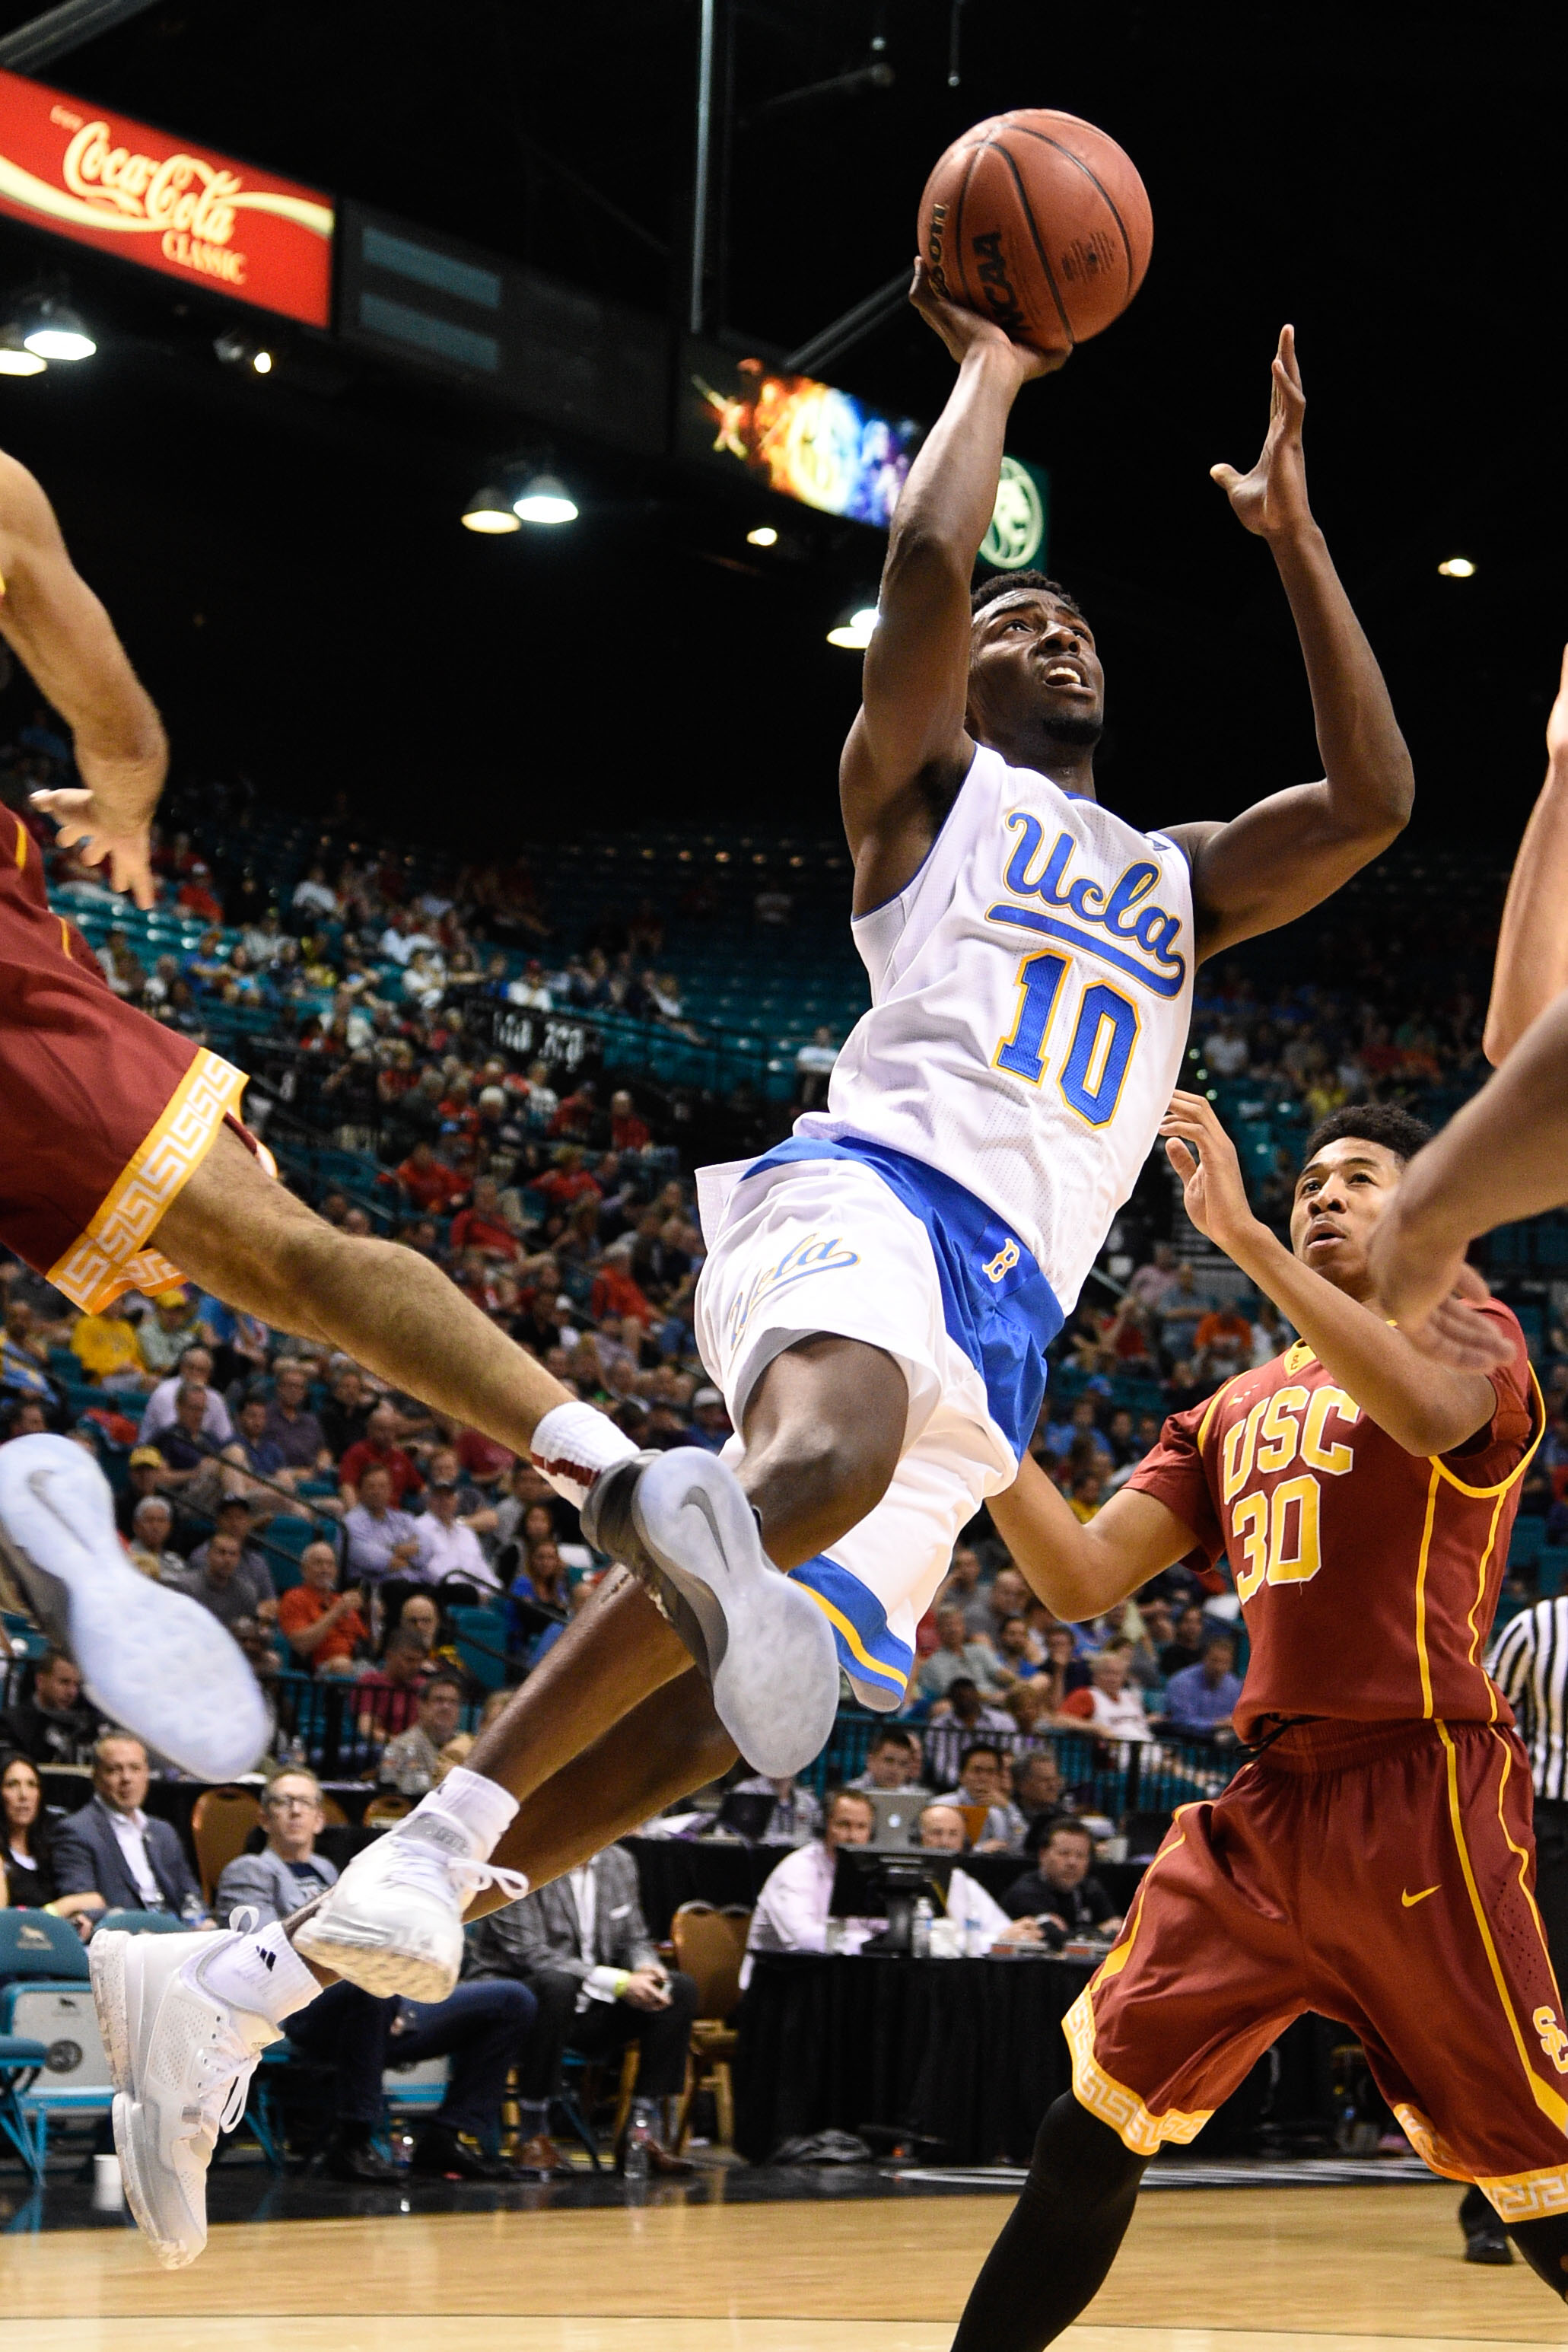 Isaac Hamilton led UCLA past Southern Cal in PAC-12 Conference Play